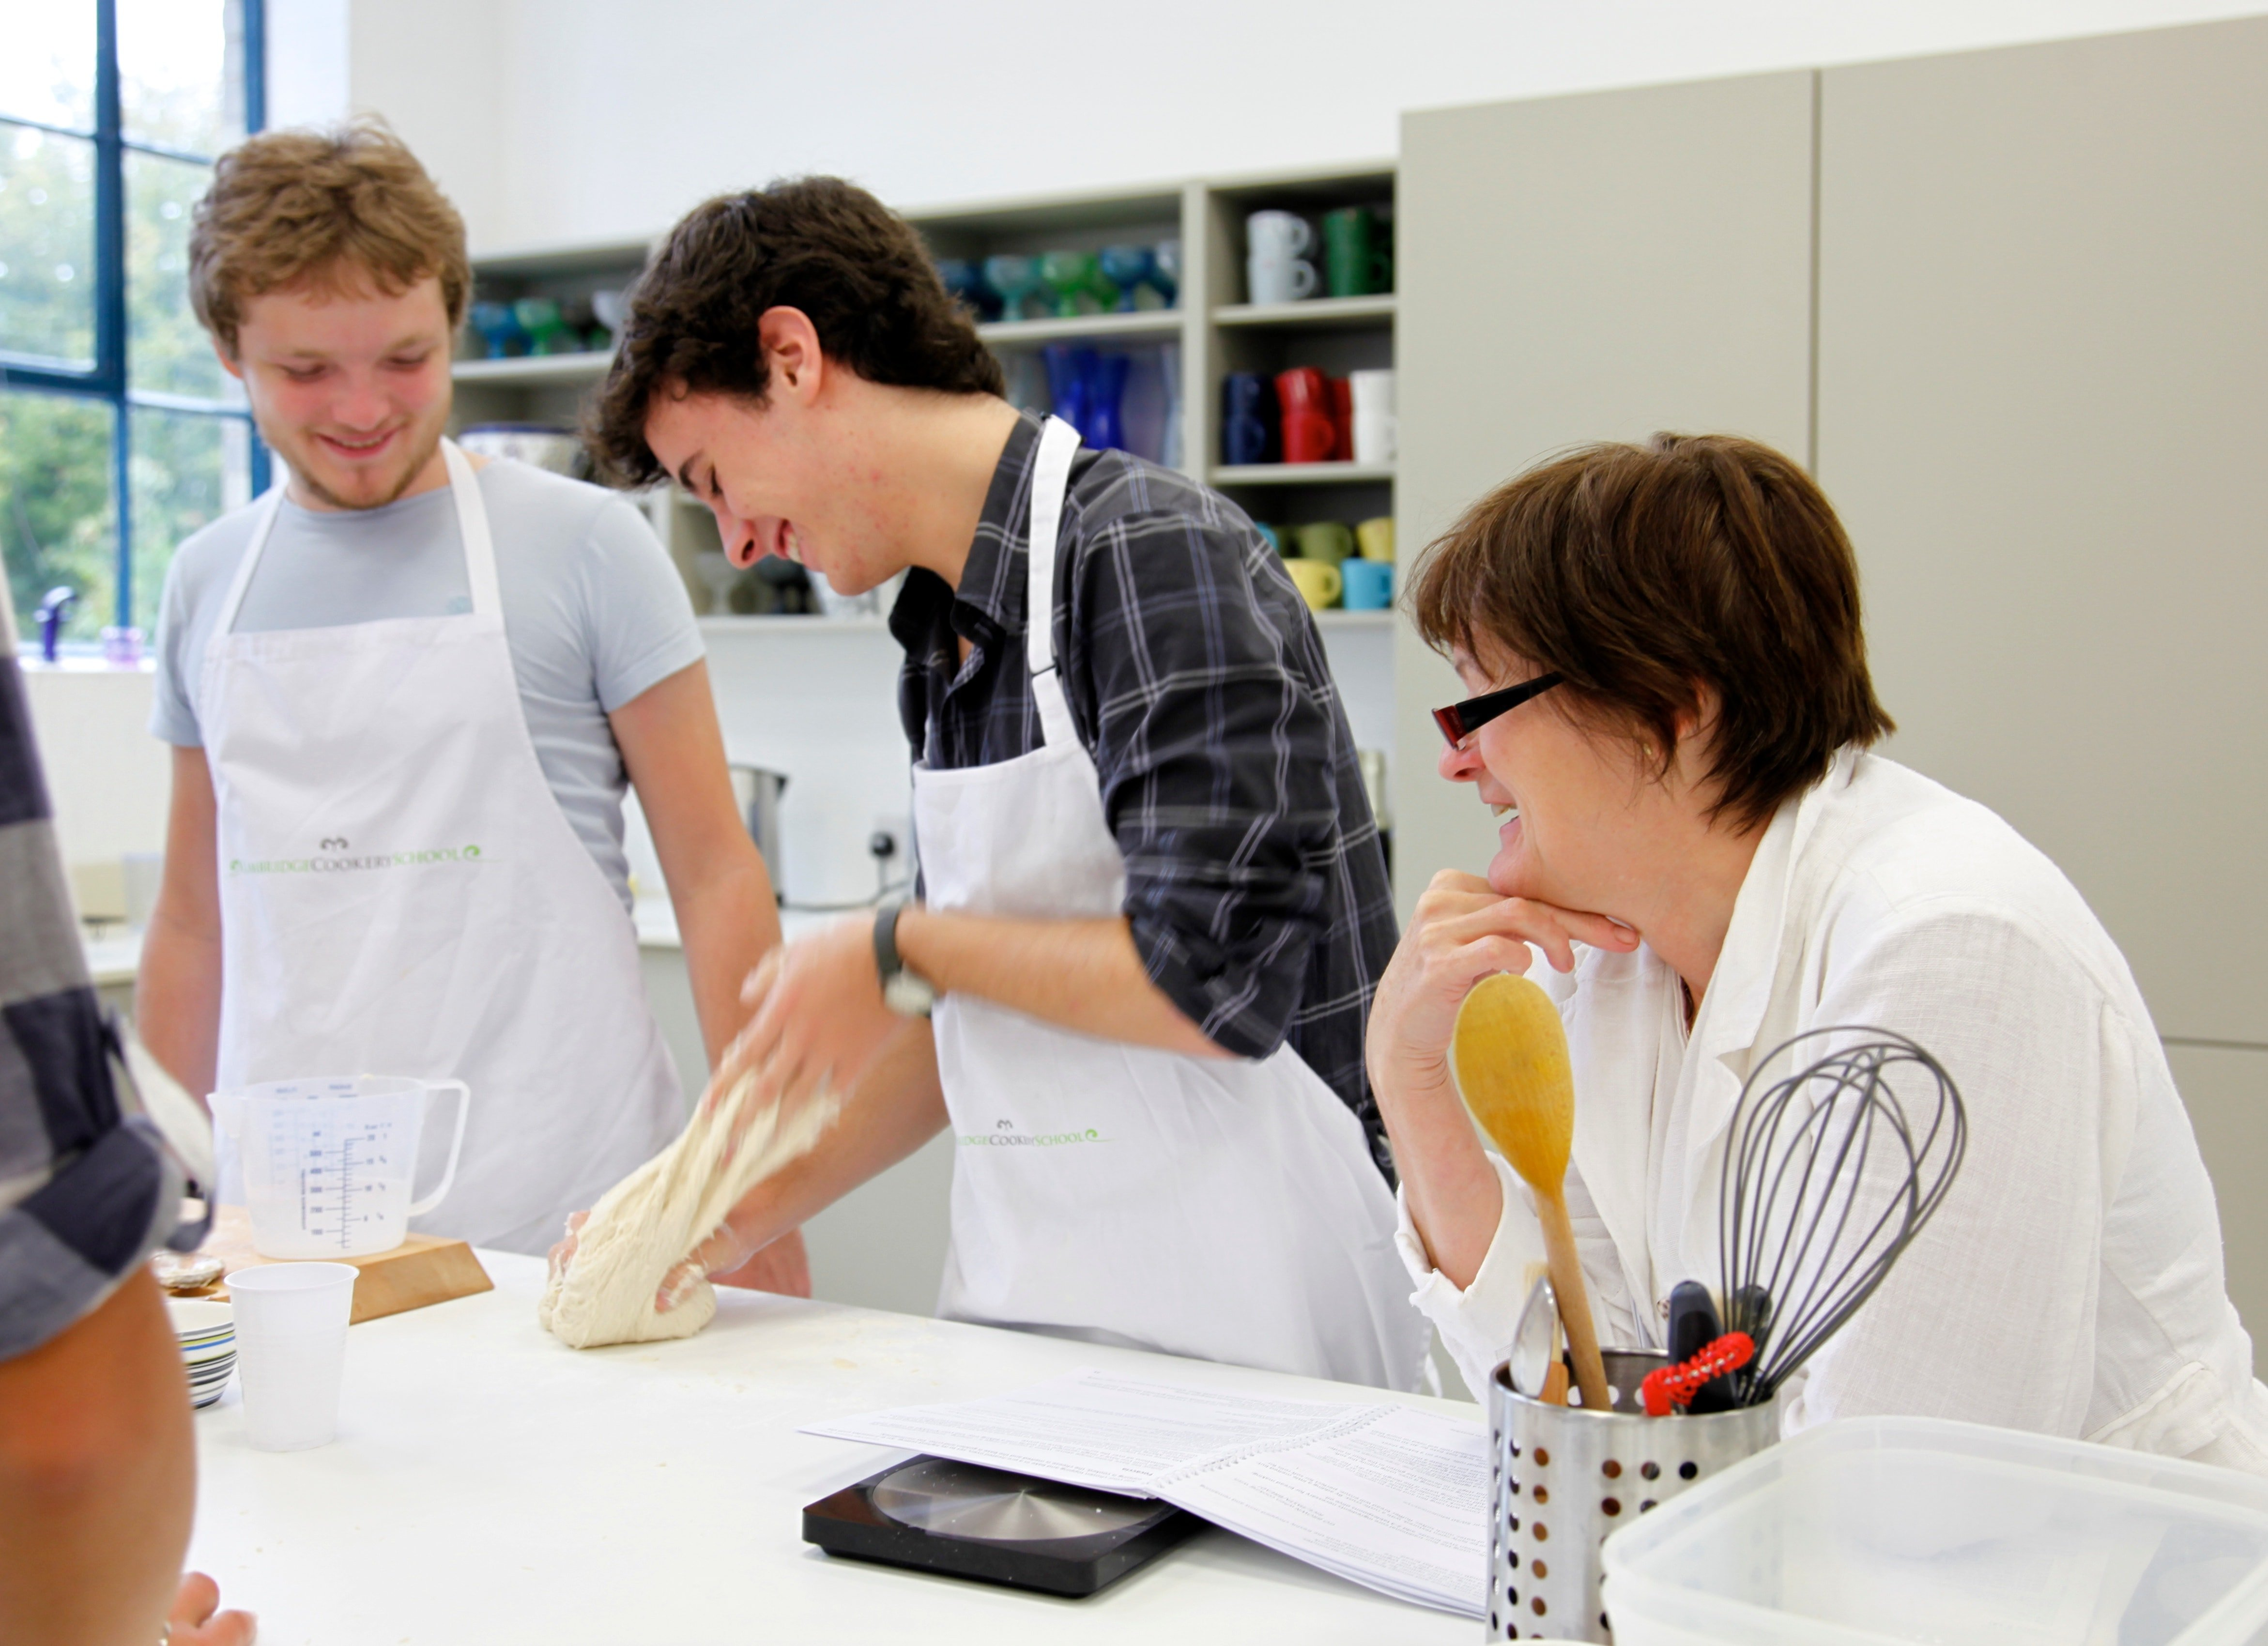 Top cookery courses to bag a ski chalet host job